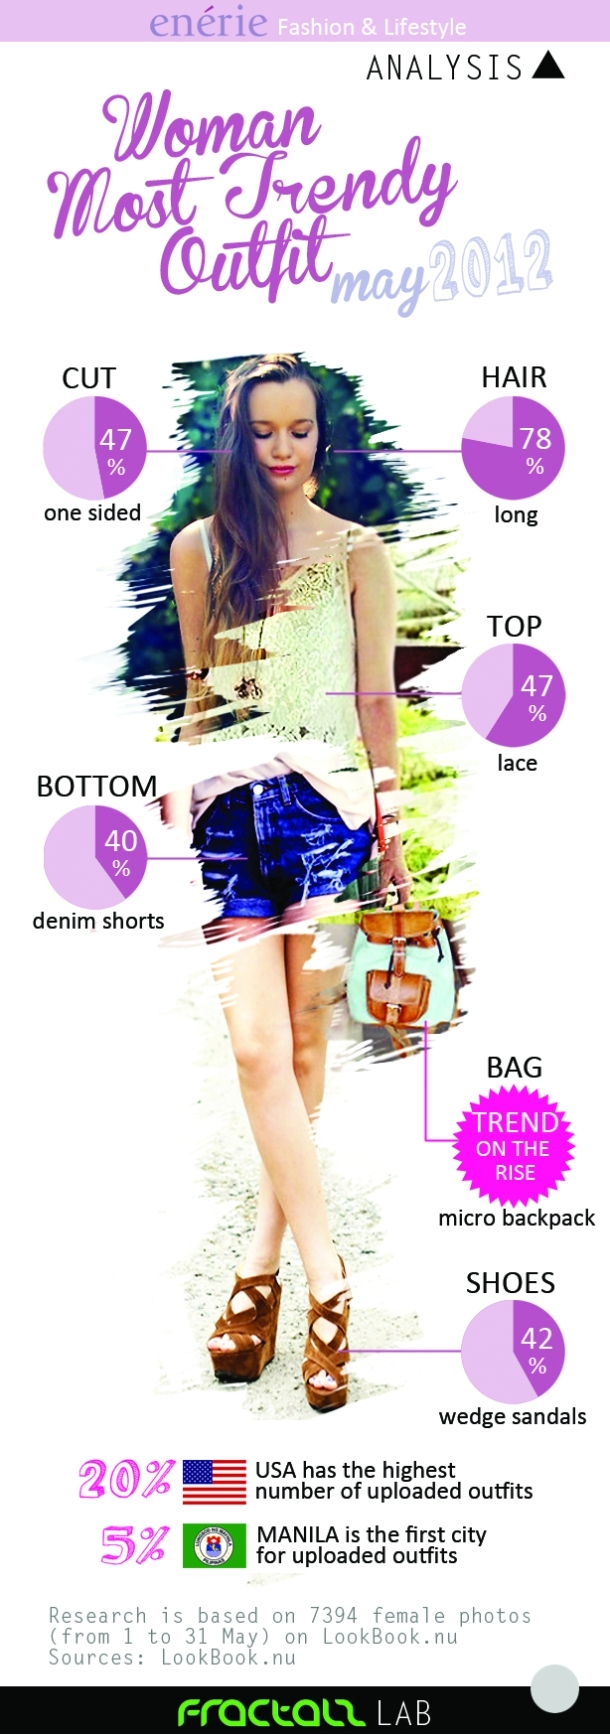 Woman Most Trendy outfit May 2012